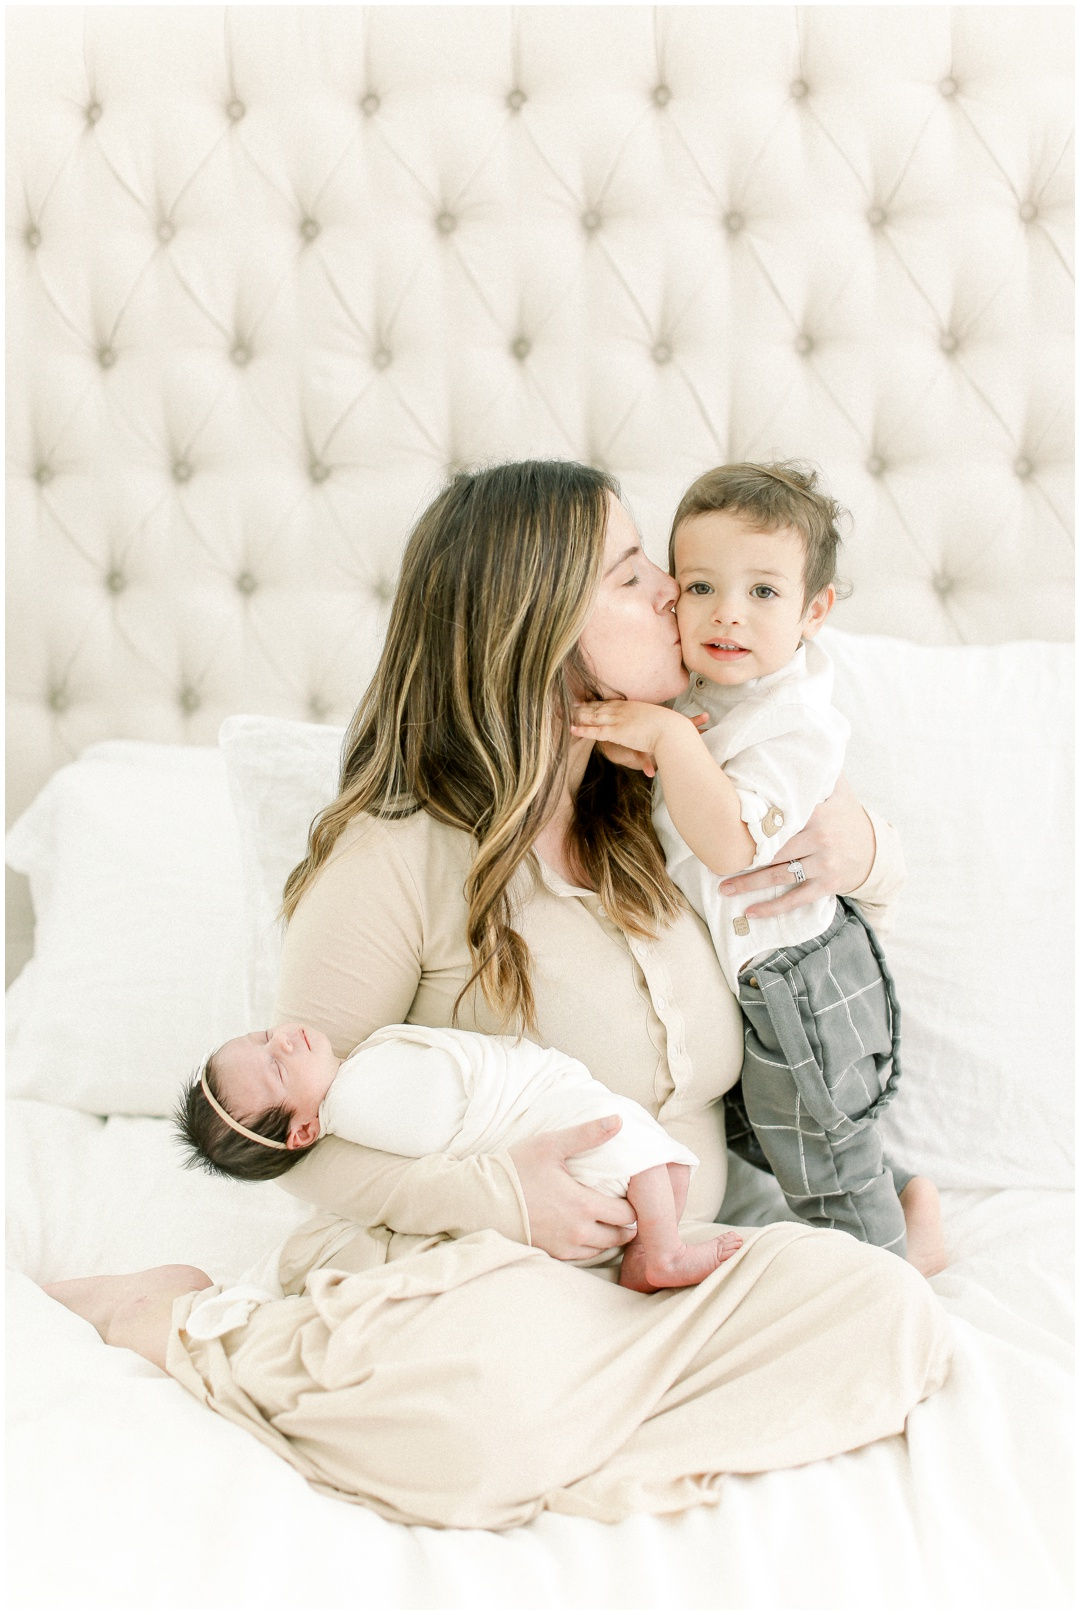 Newport_Beach_Newborn_Light_Airy_Natural_Photographer_Newport_Beach_In-Home_Photographer_Orange_County_Family_Photographer_Cori_Kleckner_Photography_Huntington_Beach_Photographer_Family_OC_Newborn_Blair_Sharpe_Ricky_Sharpe_Newborn_Family__3166.jpg